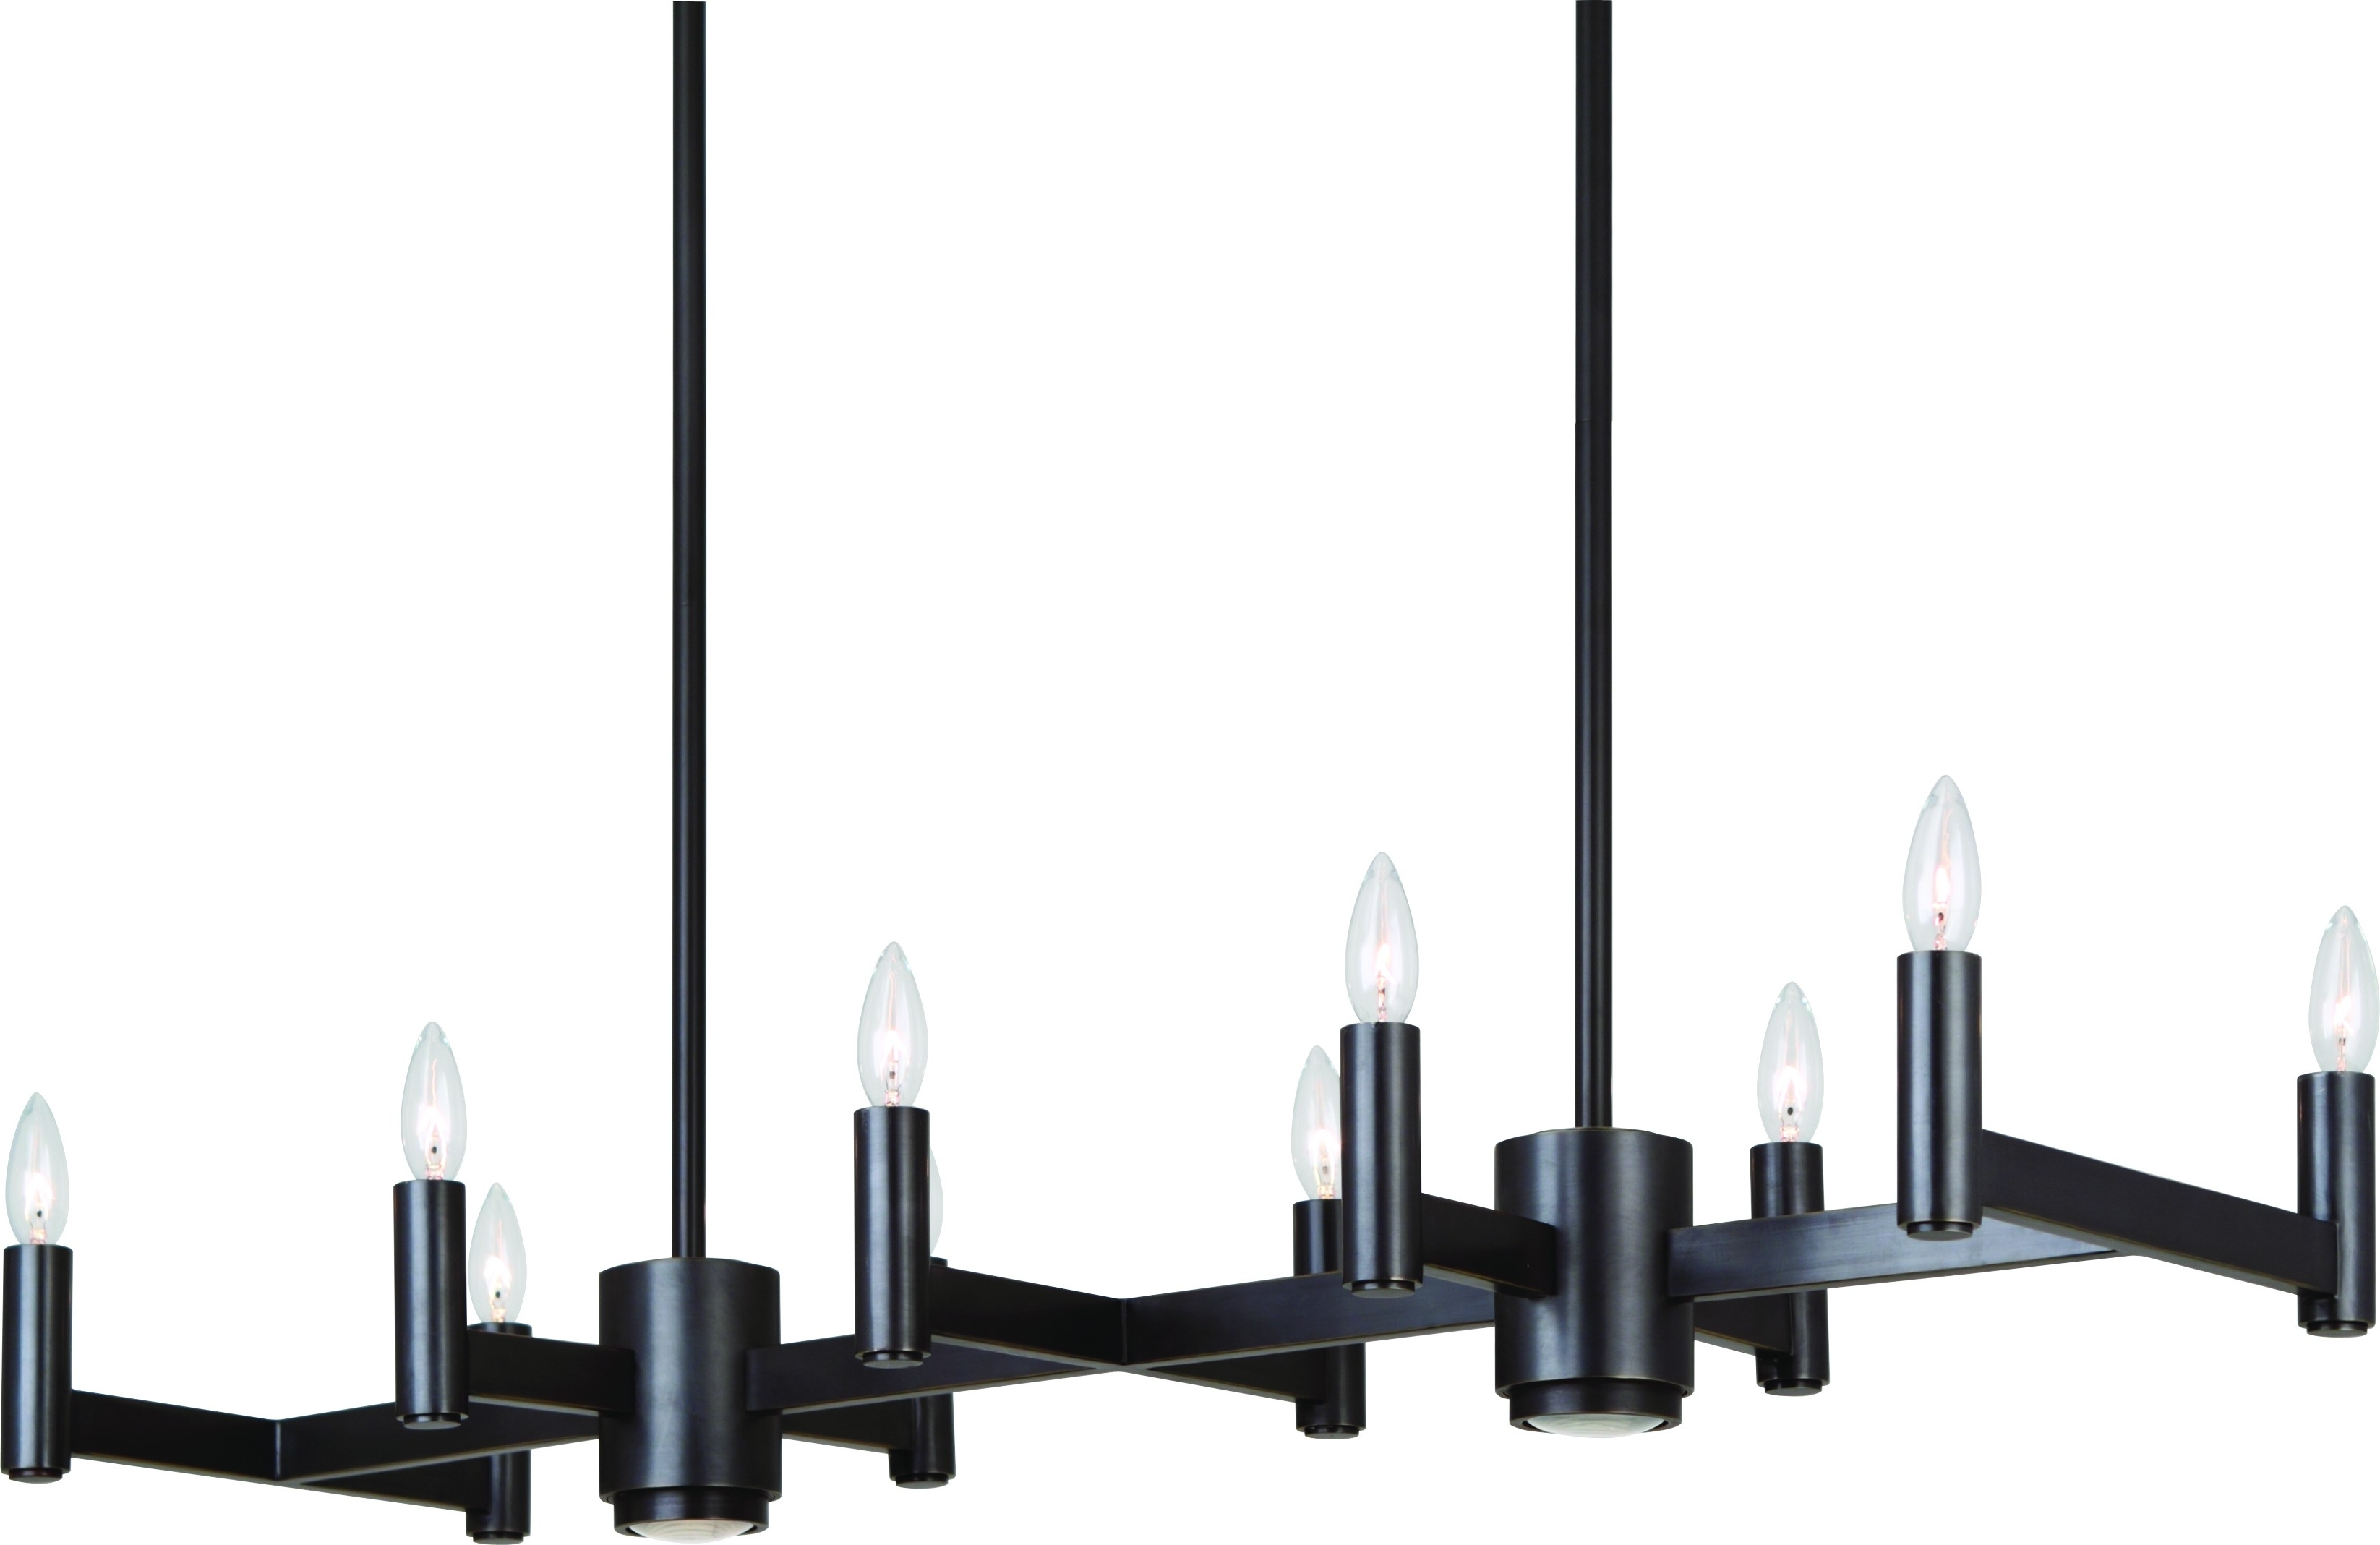 Modern Black Chandelier Pertaining To Fashionable Hanging Rectangular Modern Black Wrought Iron Chandeliers With Lamp (View 14 of 20)